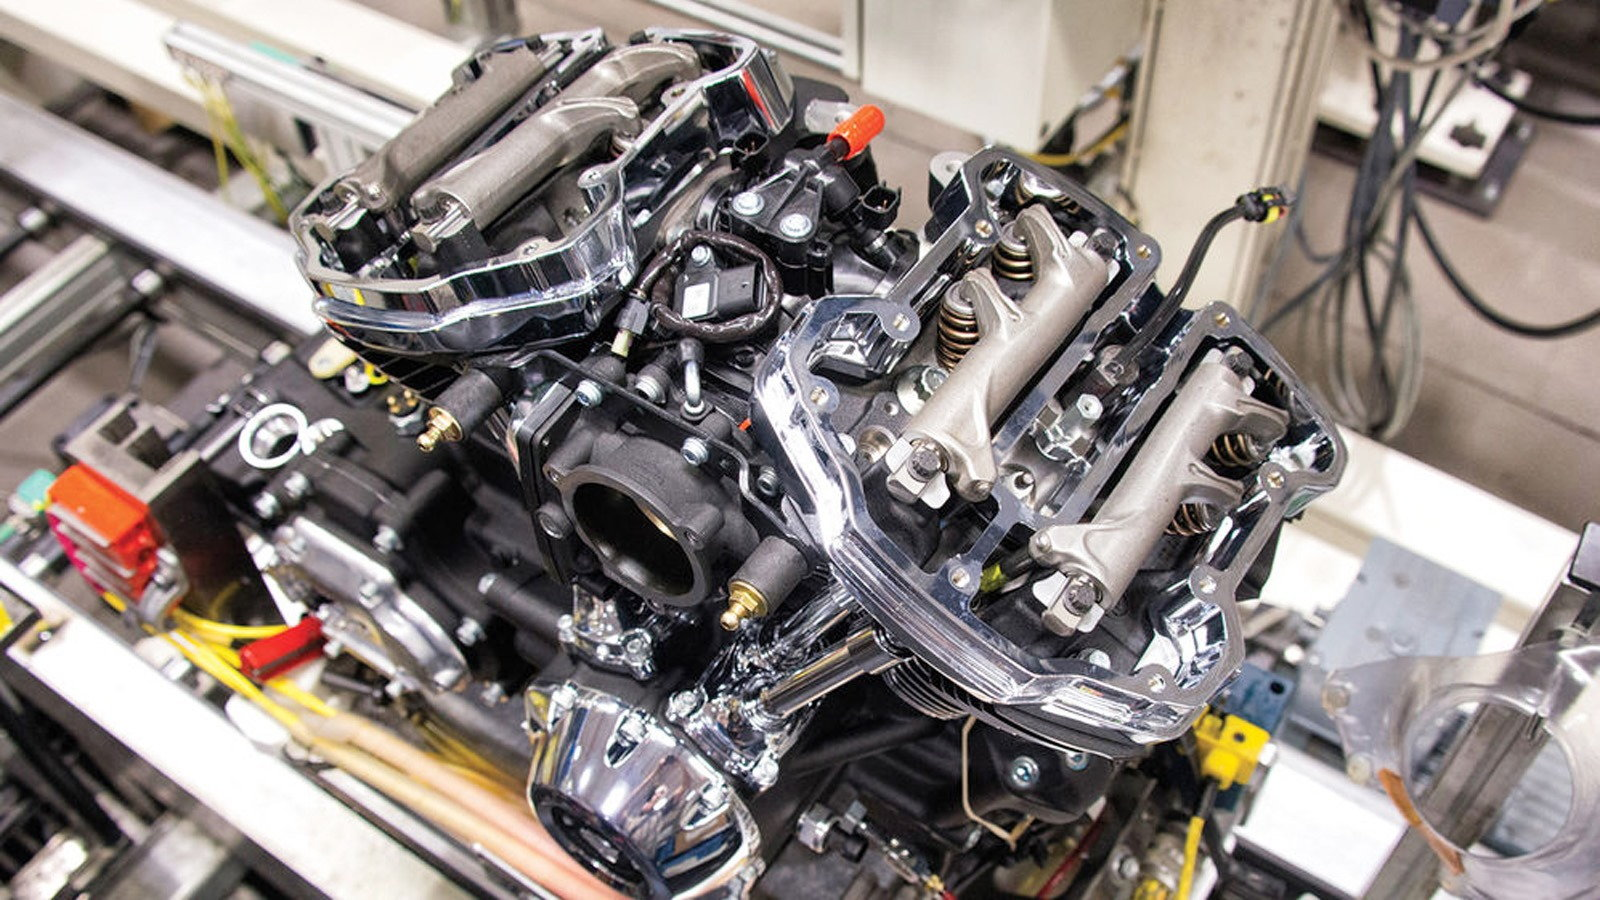 Eight Valves Mean More Power and Better Mileage